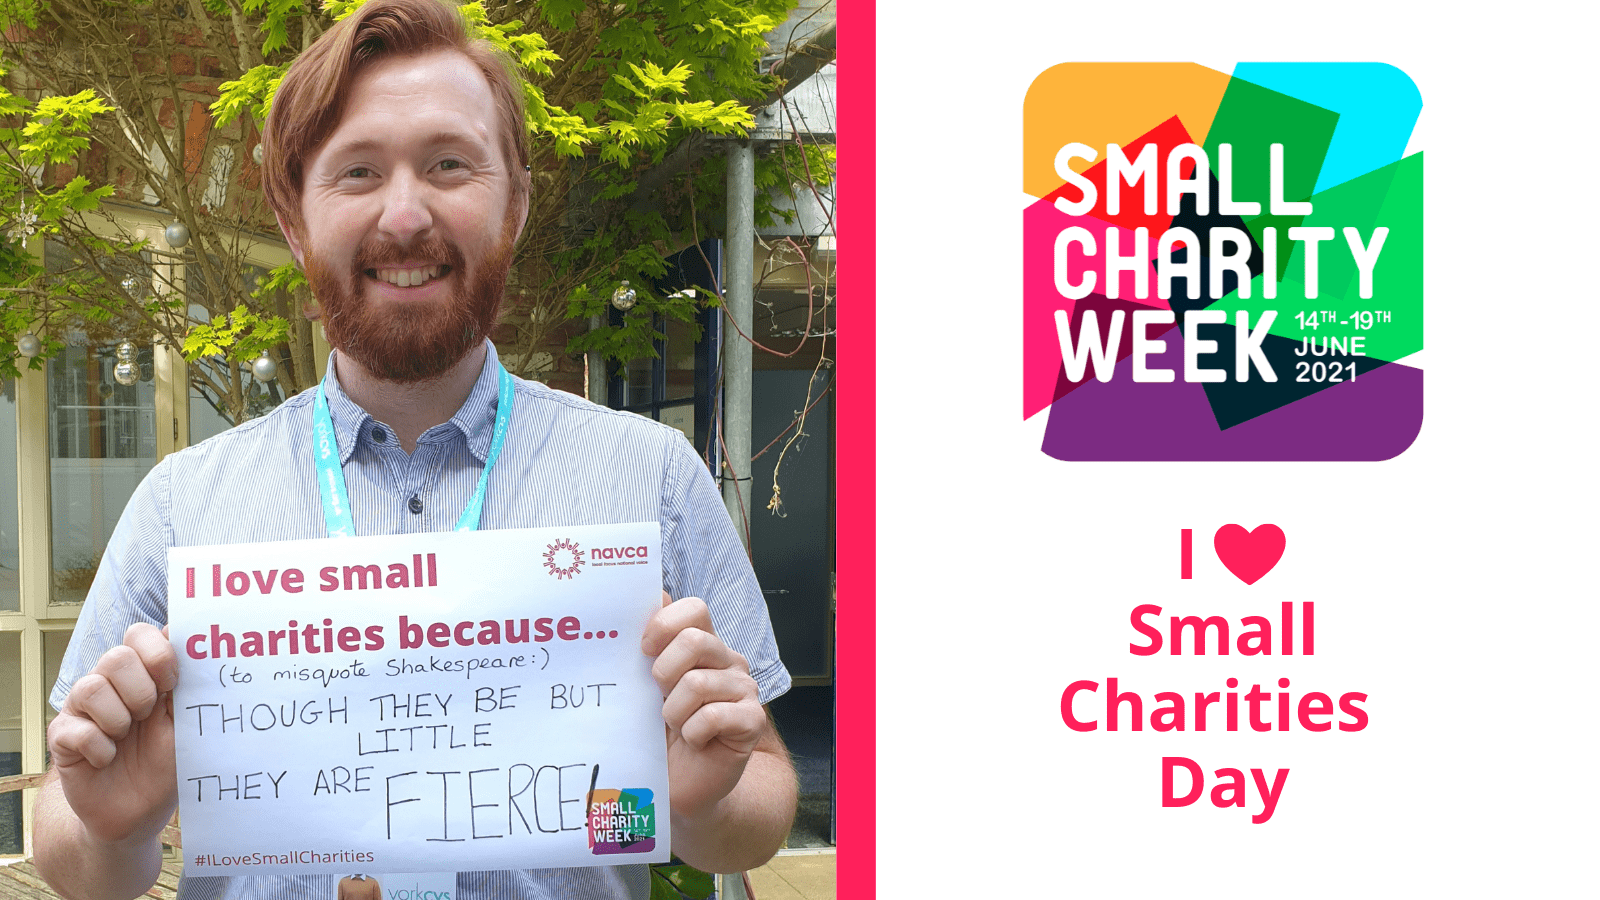 White male with red hair and a beard holding a sign which reads: I love small charities because...(to misquote Shakespeare) Though they be but little, they are fierce. In the background is a tree and a long window. Small Charities Week Logo 14-21 June 2021. I hear small charities day.